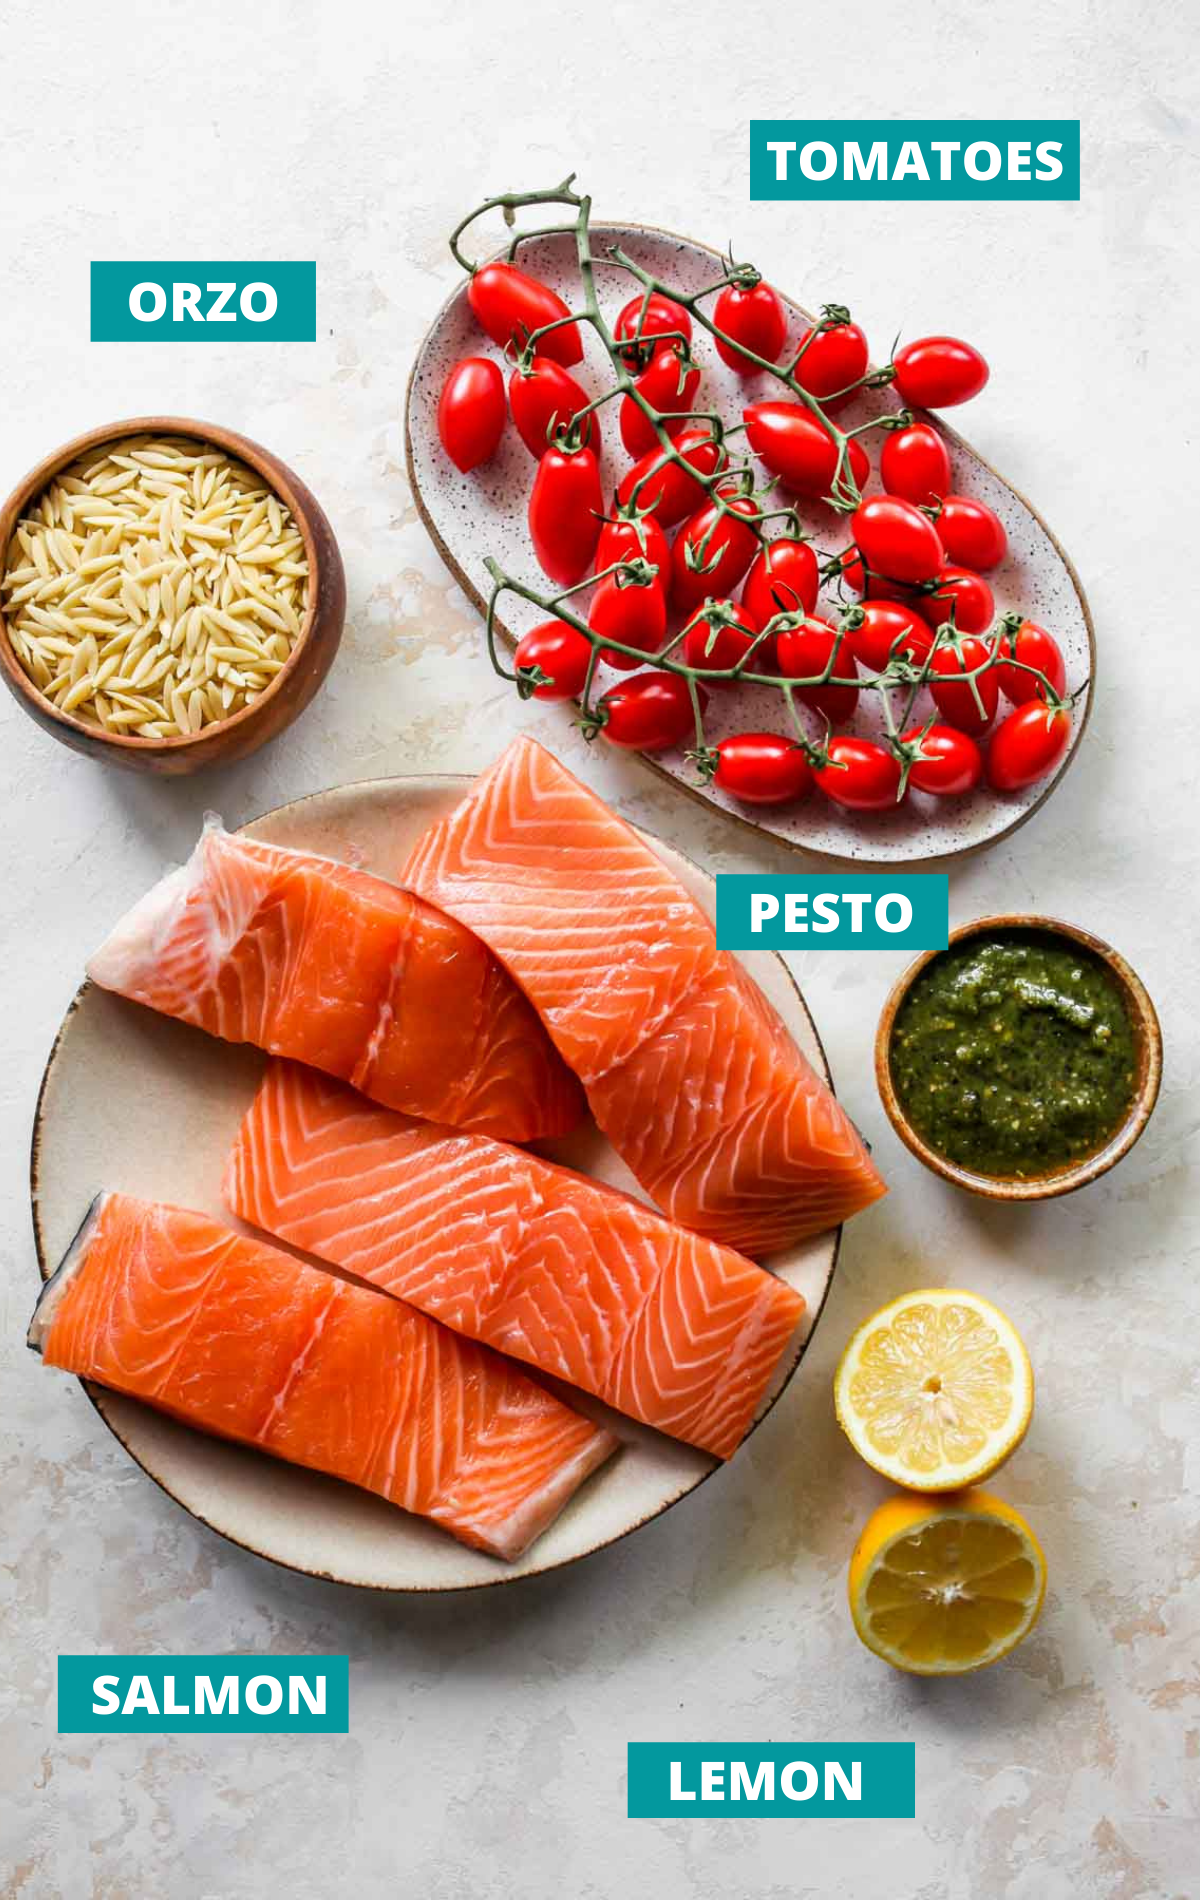 Salmon, pesto, tomatoes, and orzo in separate bowls with ingredient labels